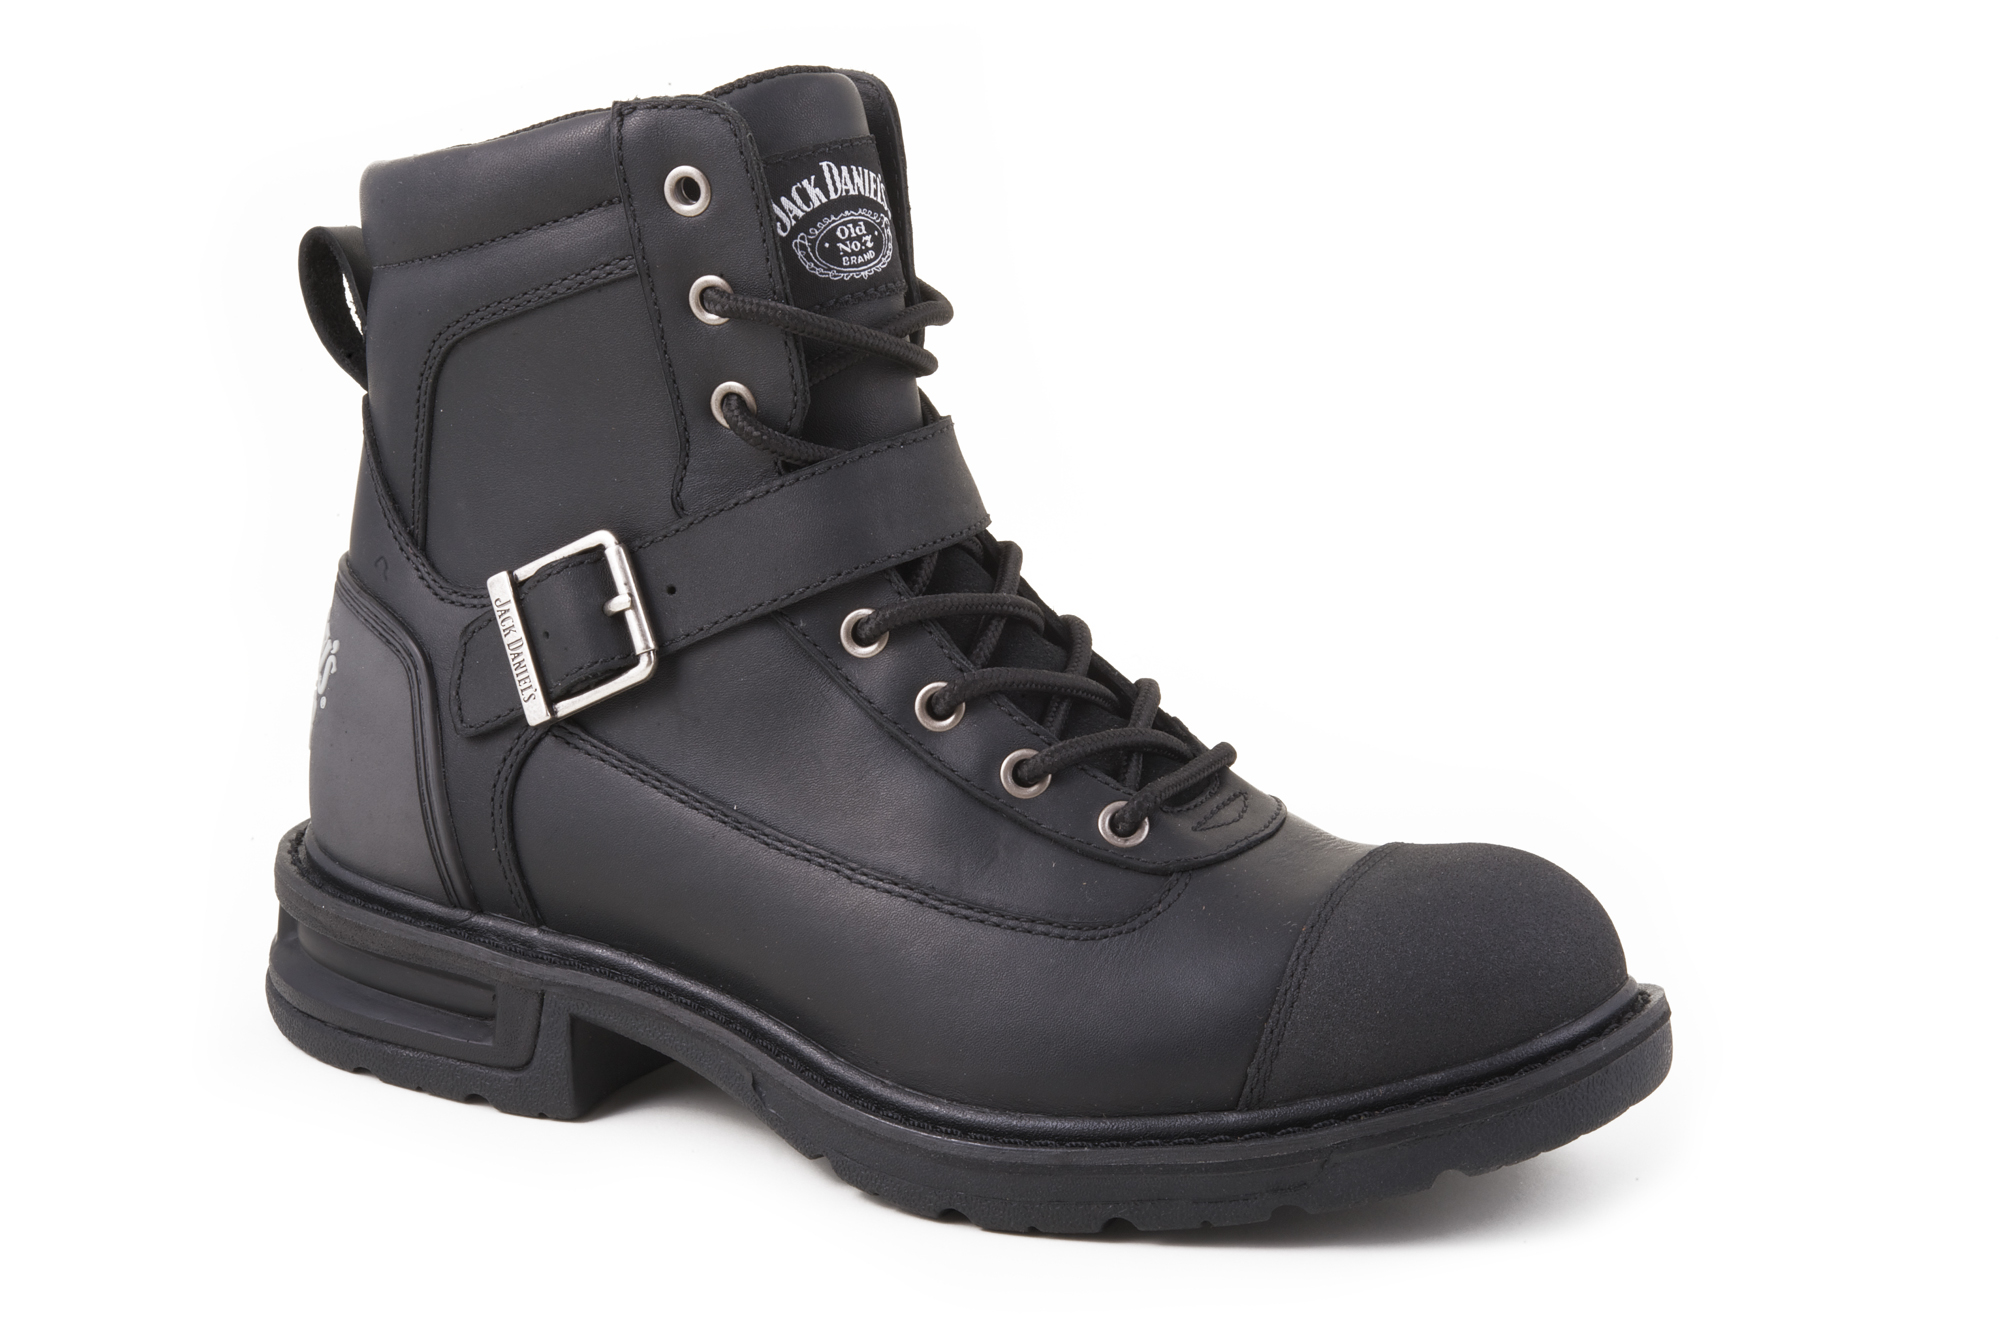 Jack Daniels Mens Motorcycle Biker Buckle Strap Lace Up Leather Boots at Sears.com